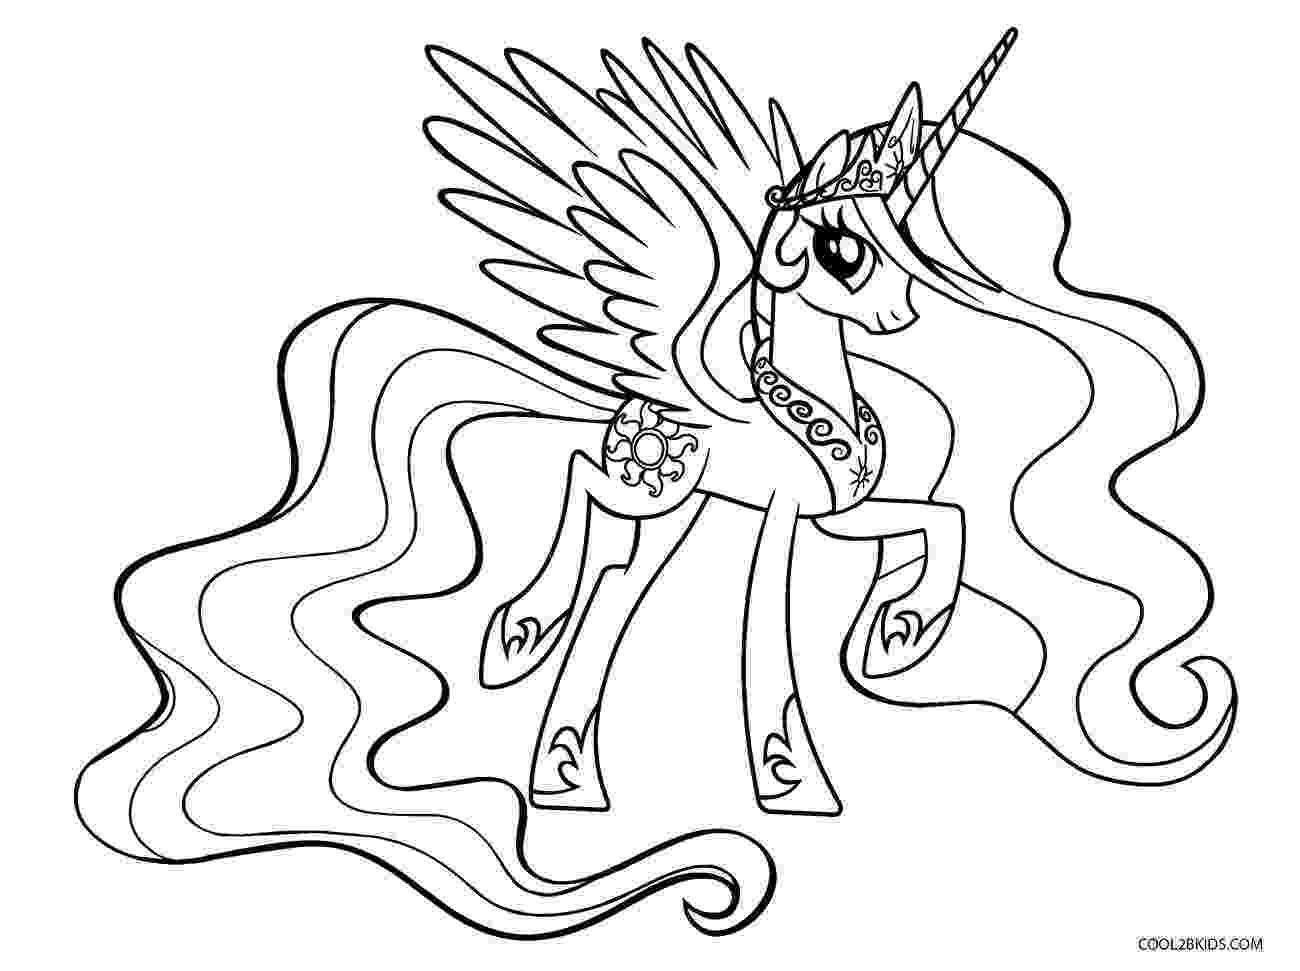 pony picture to color pony cartoon my little pony coloring pages picture color pony to